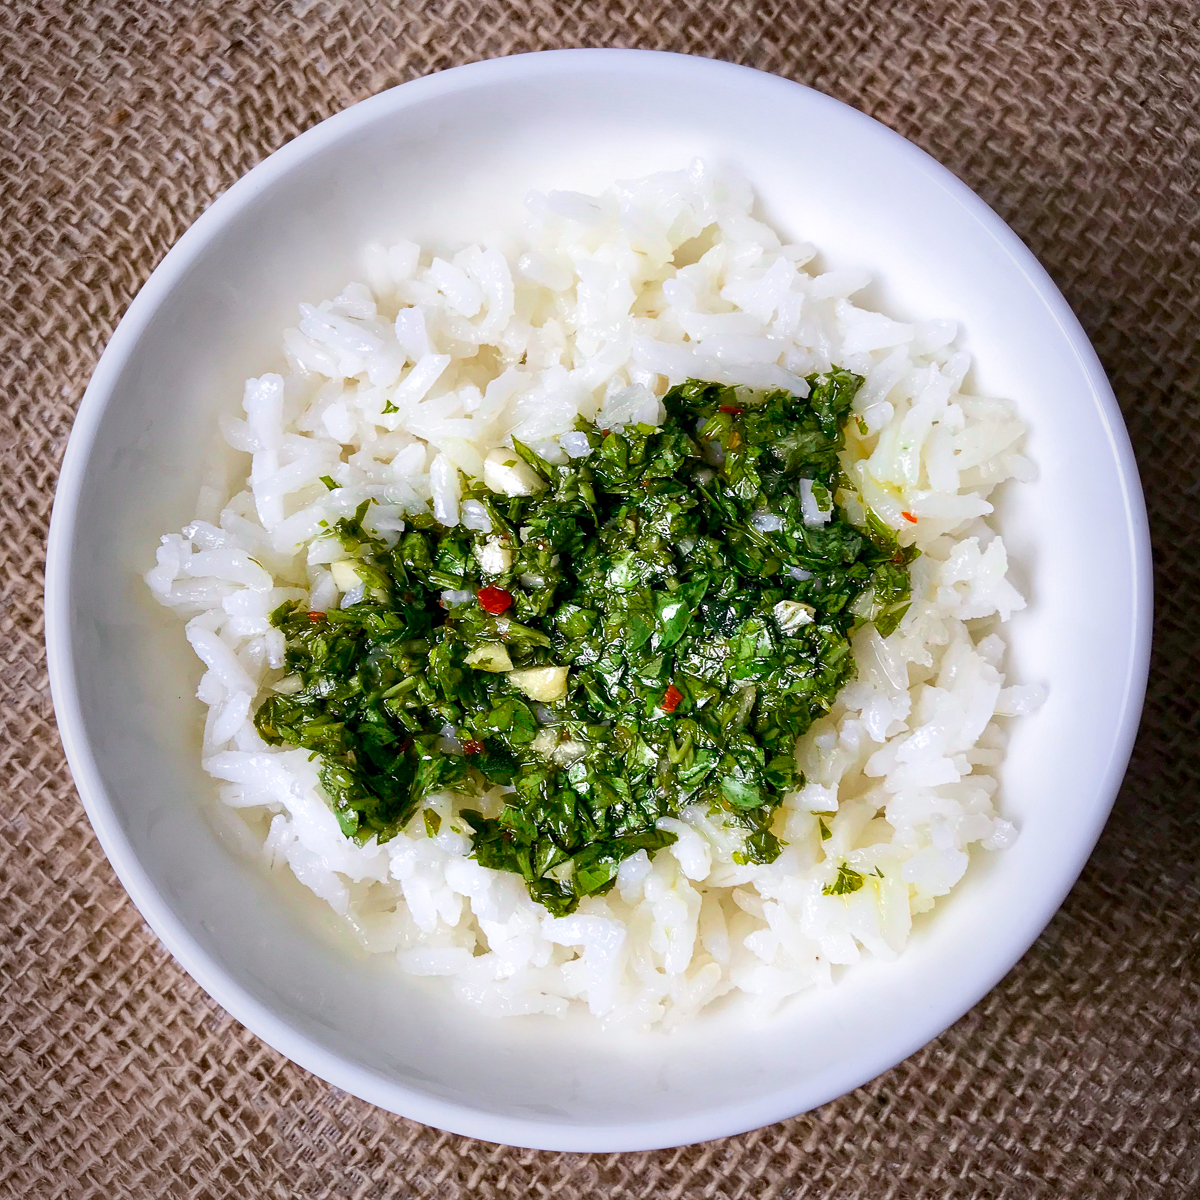 A white bowl of rice topped with some chimichurri sauce.